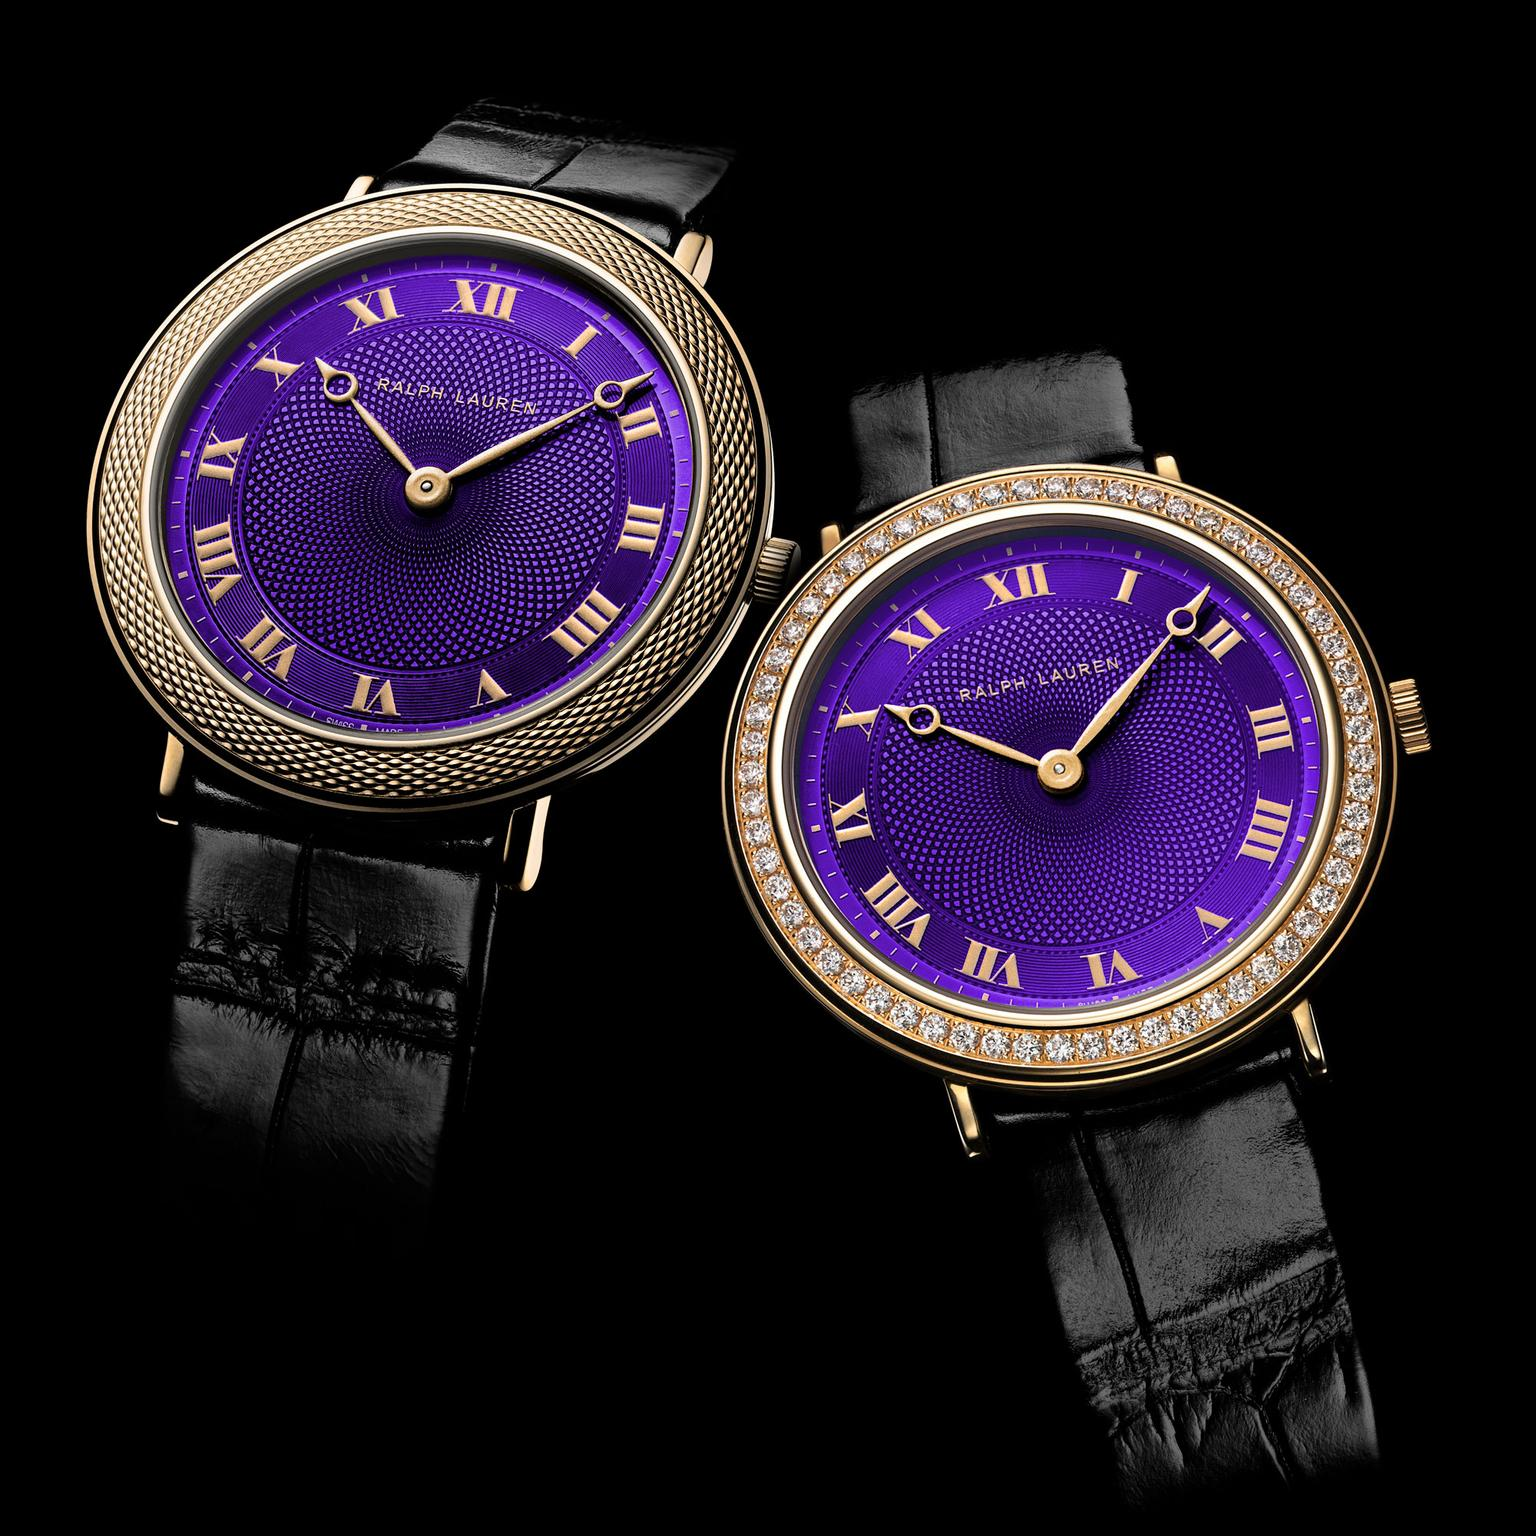 Ralph Lauren Slim Classique 32mm purple dial watches